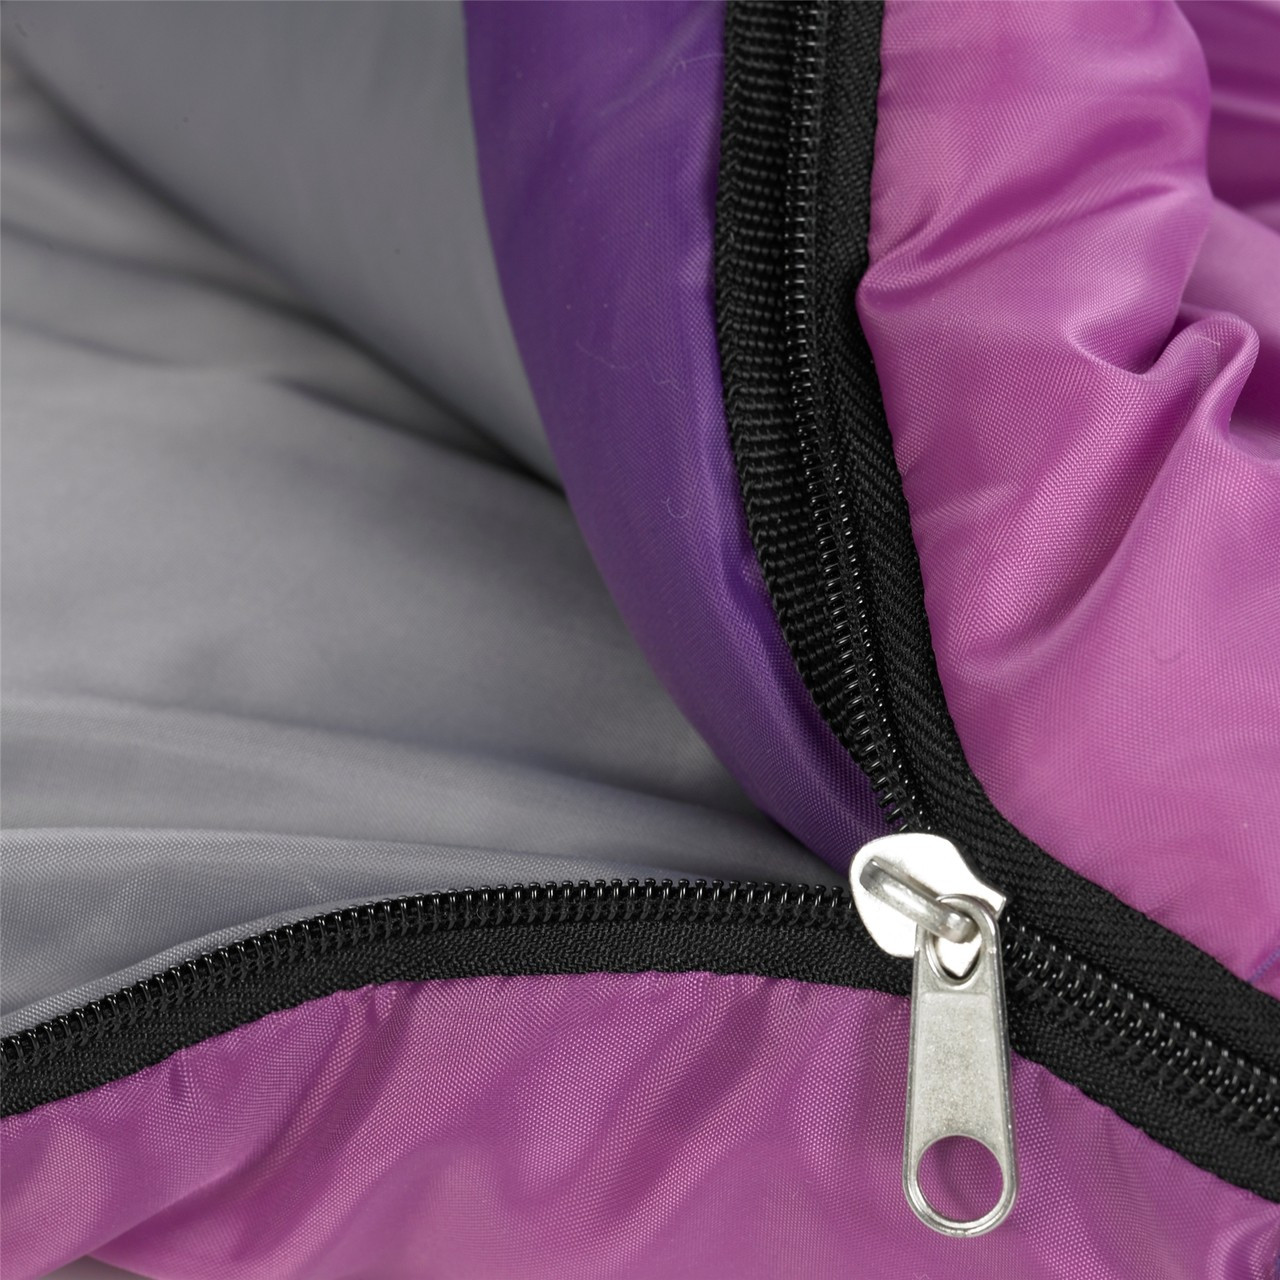 Close up view of the zipper partially unzipped on the Wenzel Kids Backyard 30 degree sleeping bag, purple